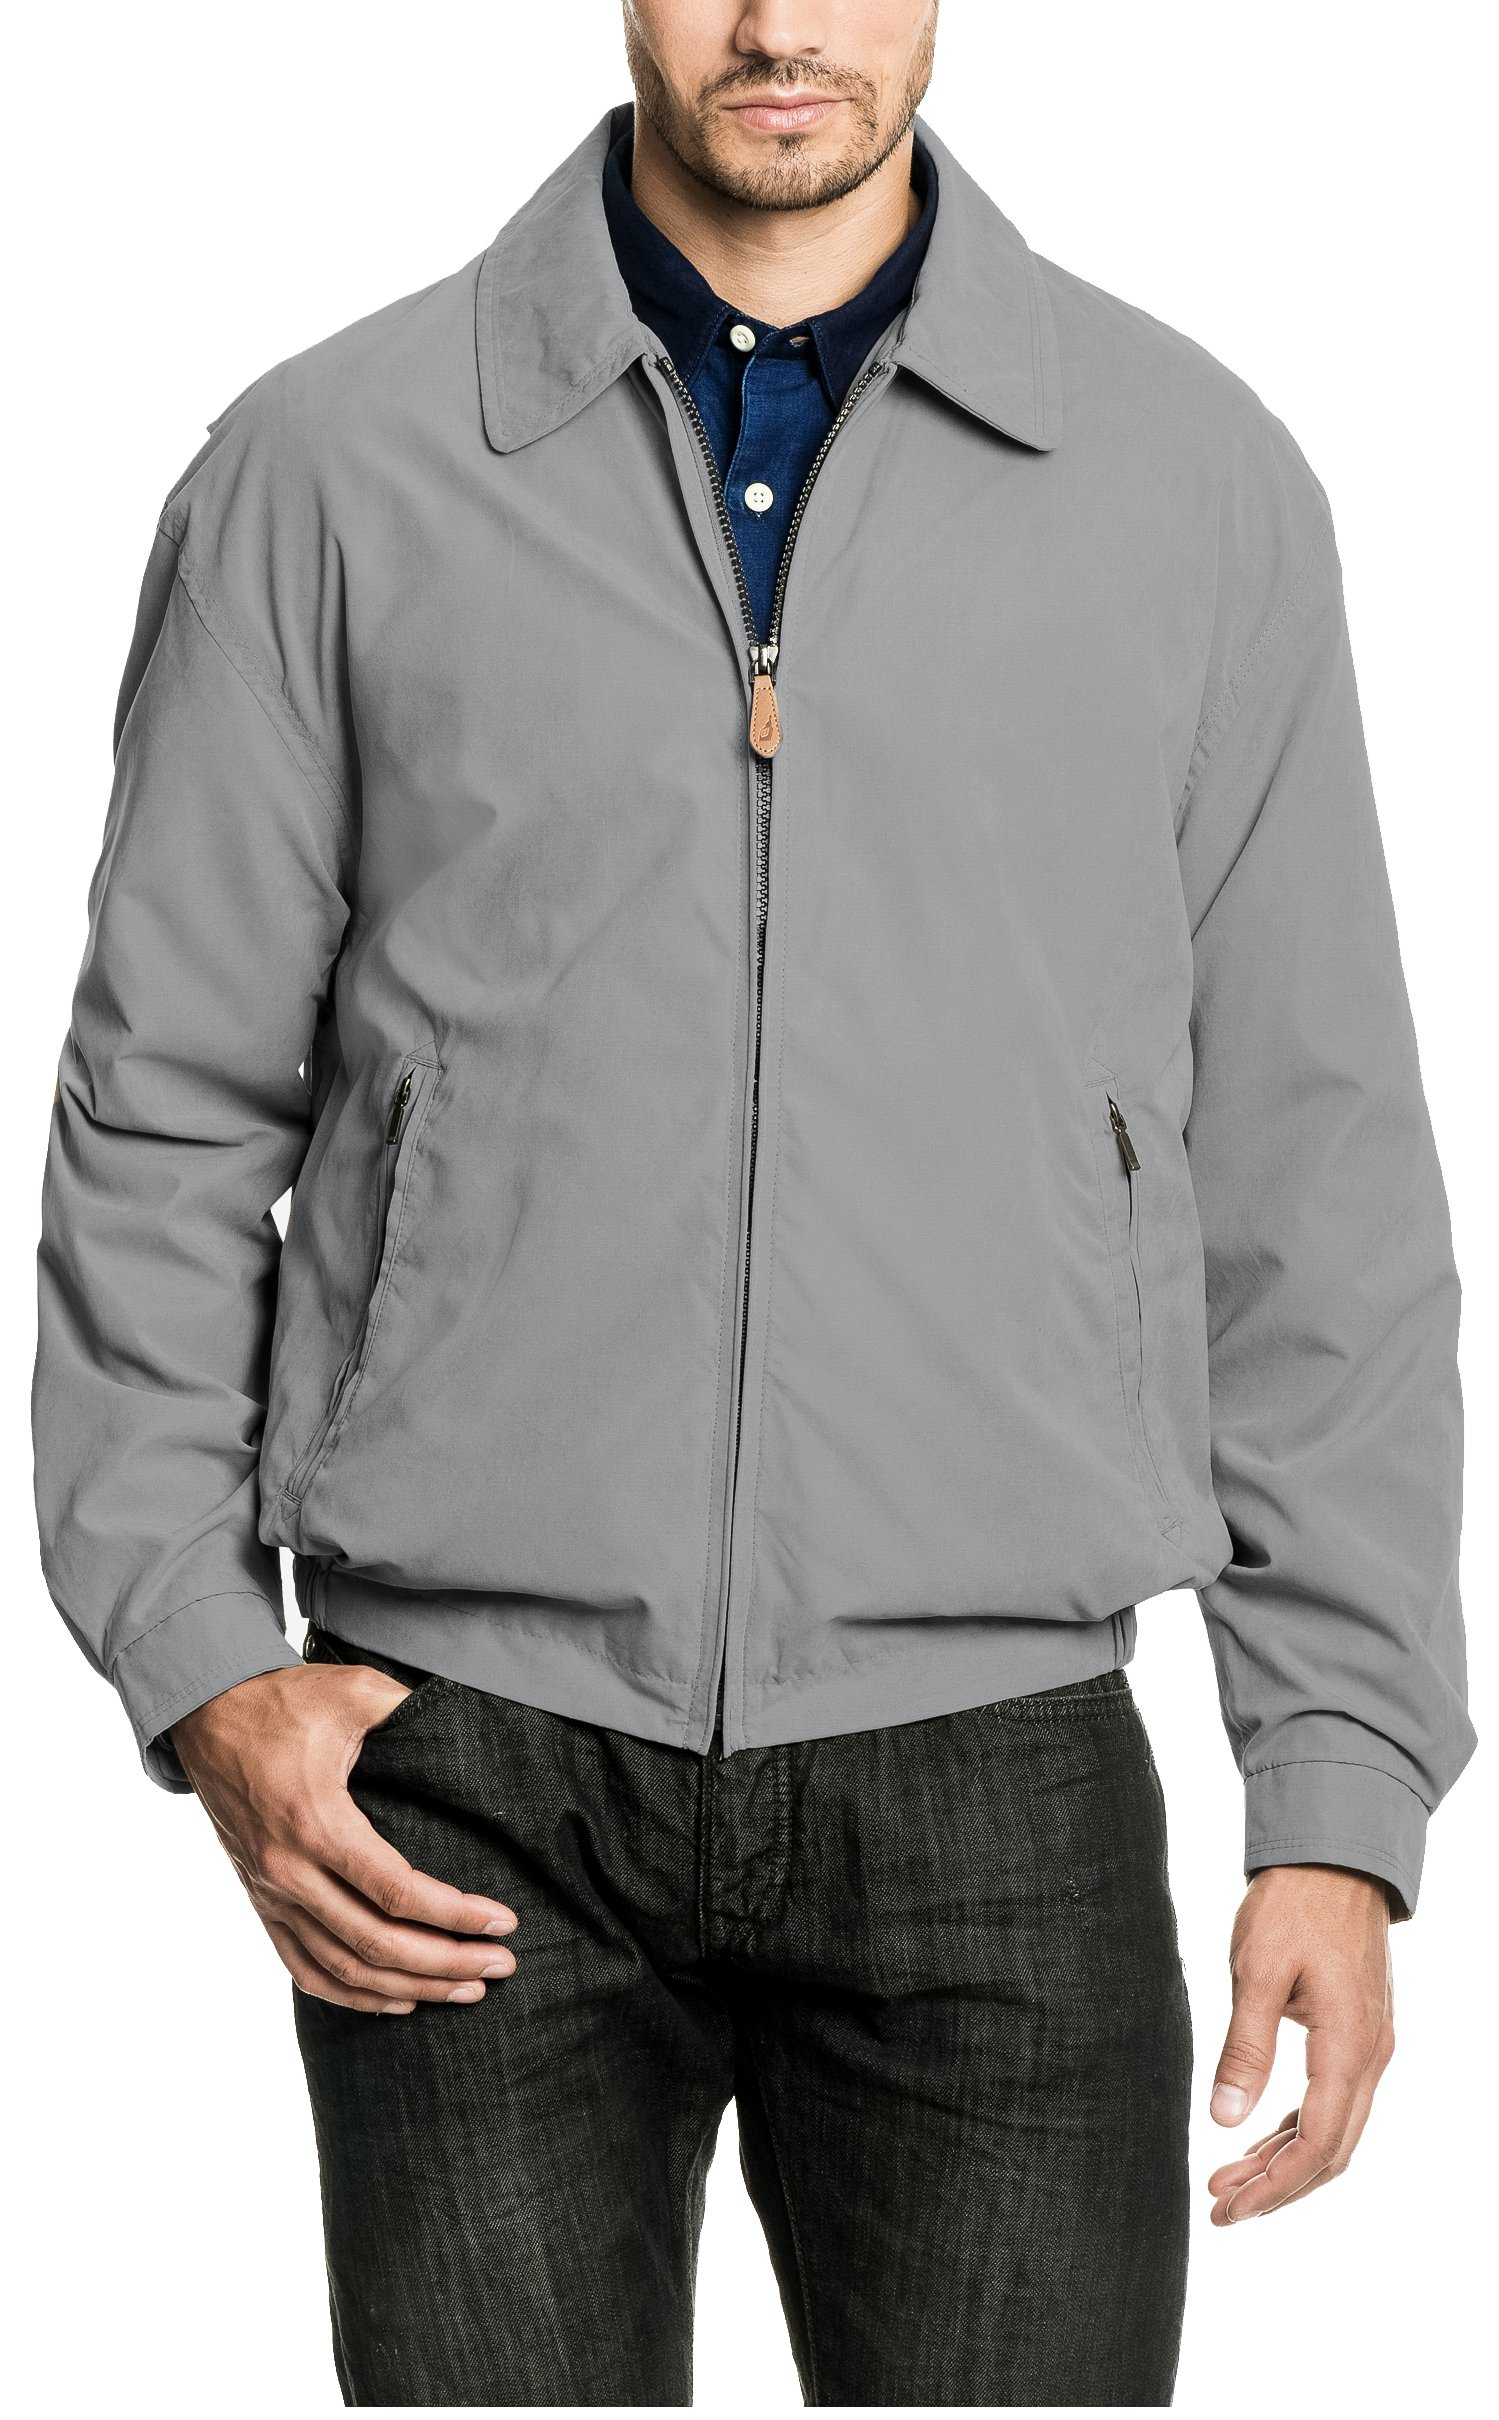 London Fog Mens Big and Tall Auburn Golf Jacket, Steeple Grey, 2X